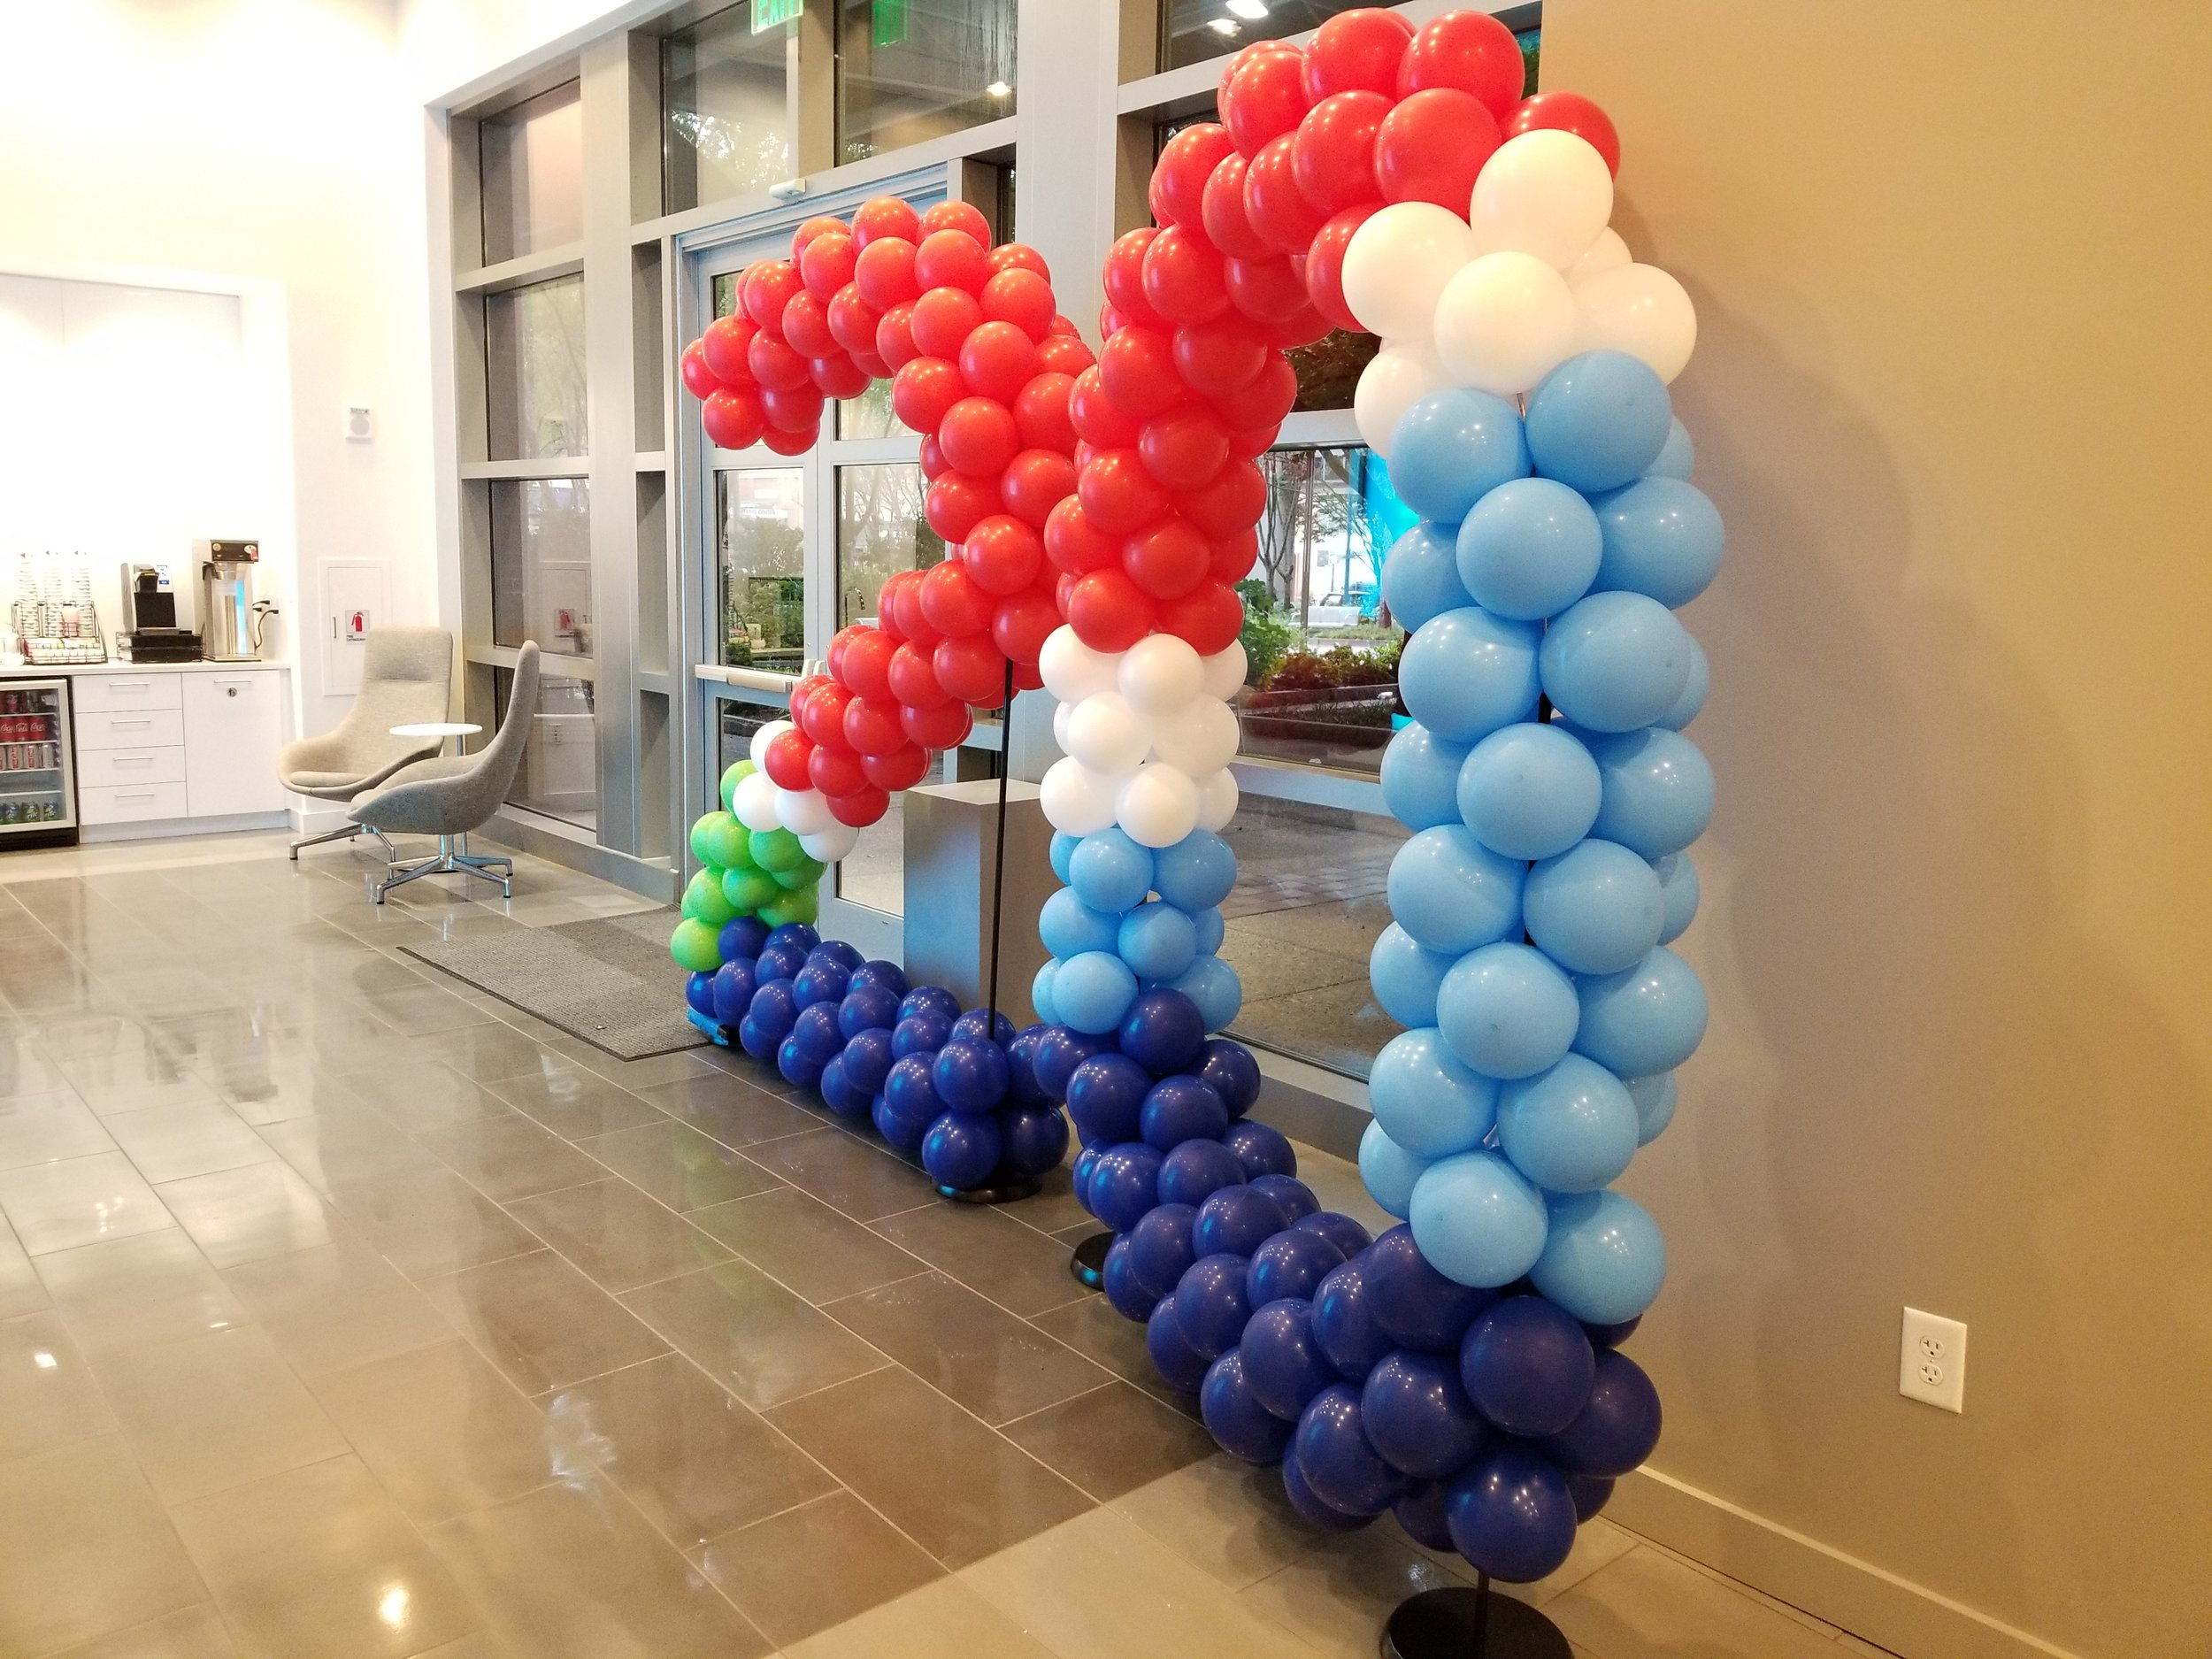 Georgia power anniversary balloons.jpg